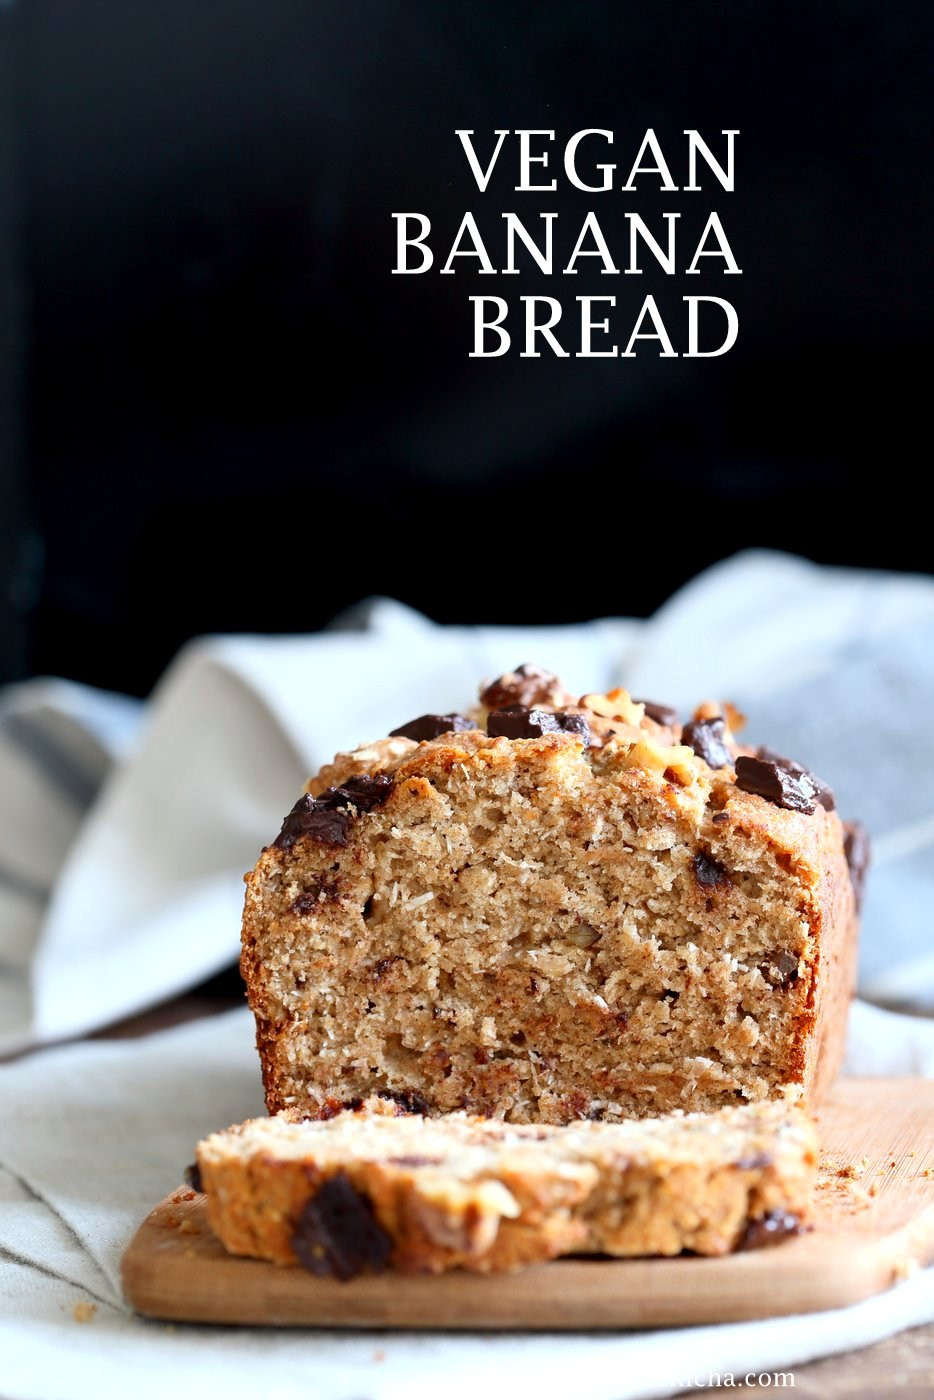 Which Bread Is Vegan  Vegan Banana Bread with Toasted Walnuts and Coconut